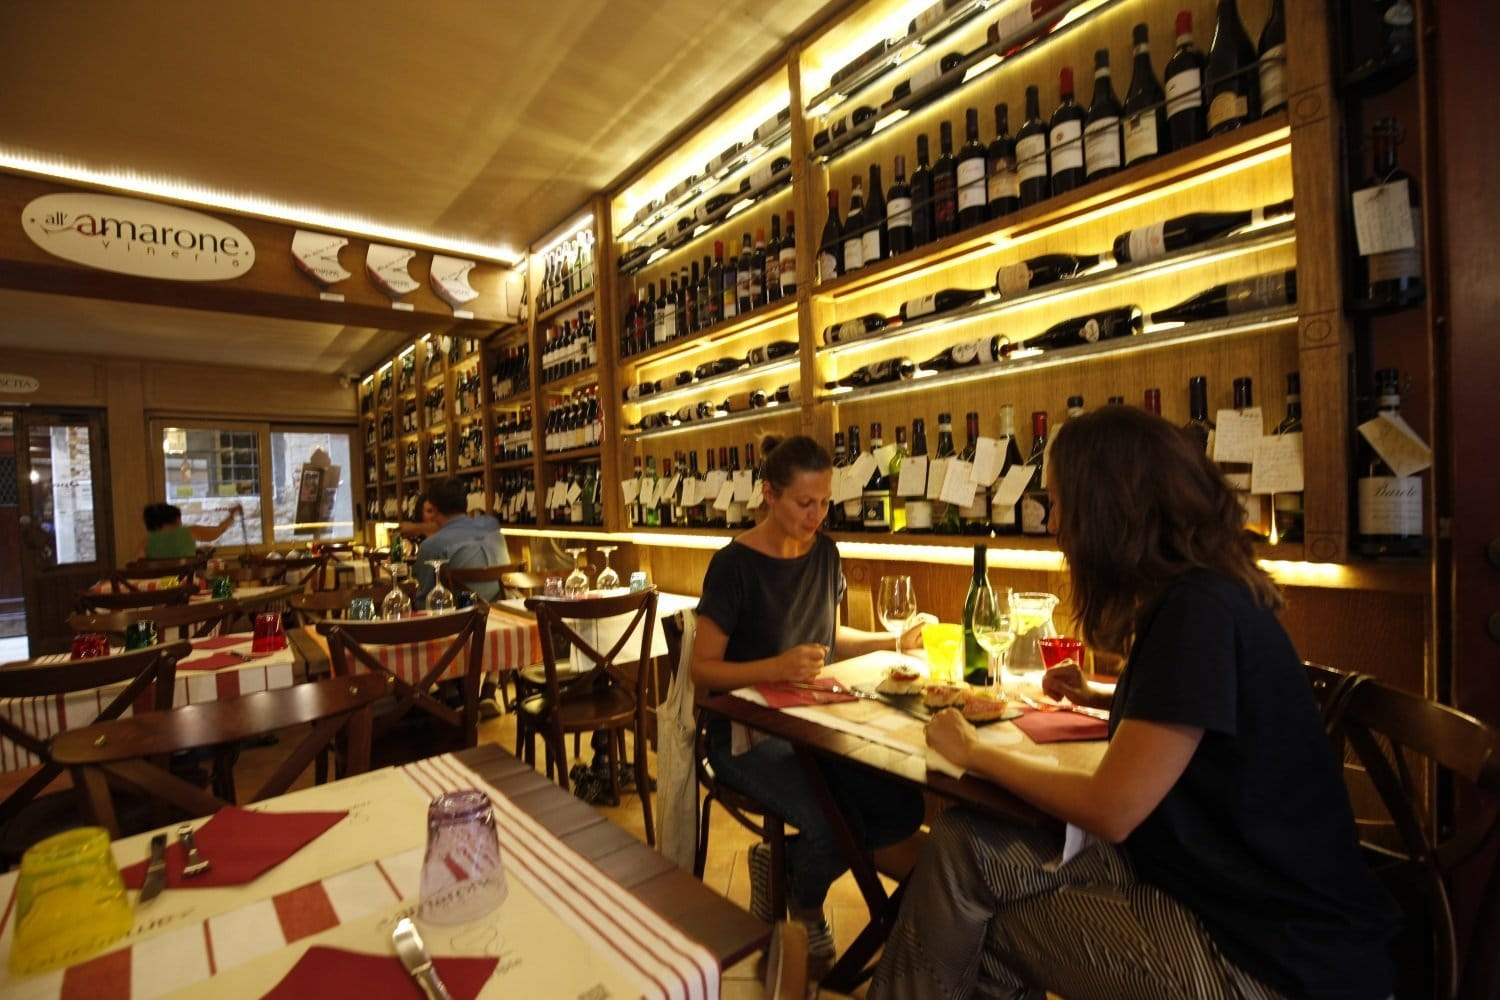 Eating inside at Vineria all'Amarone